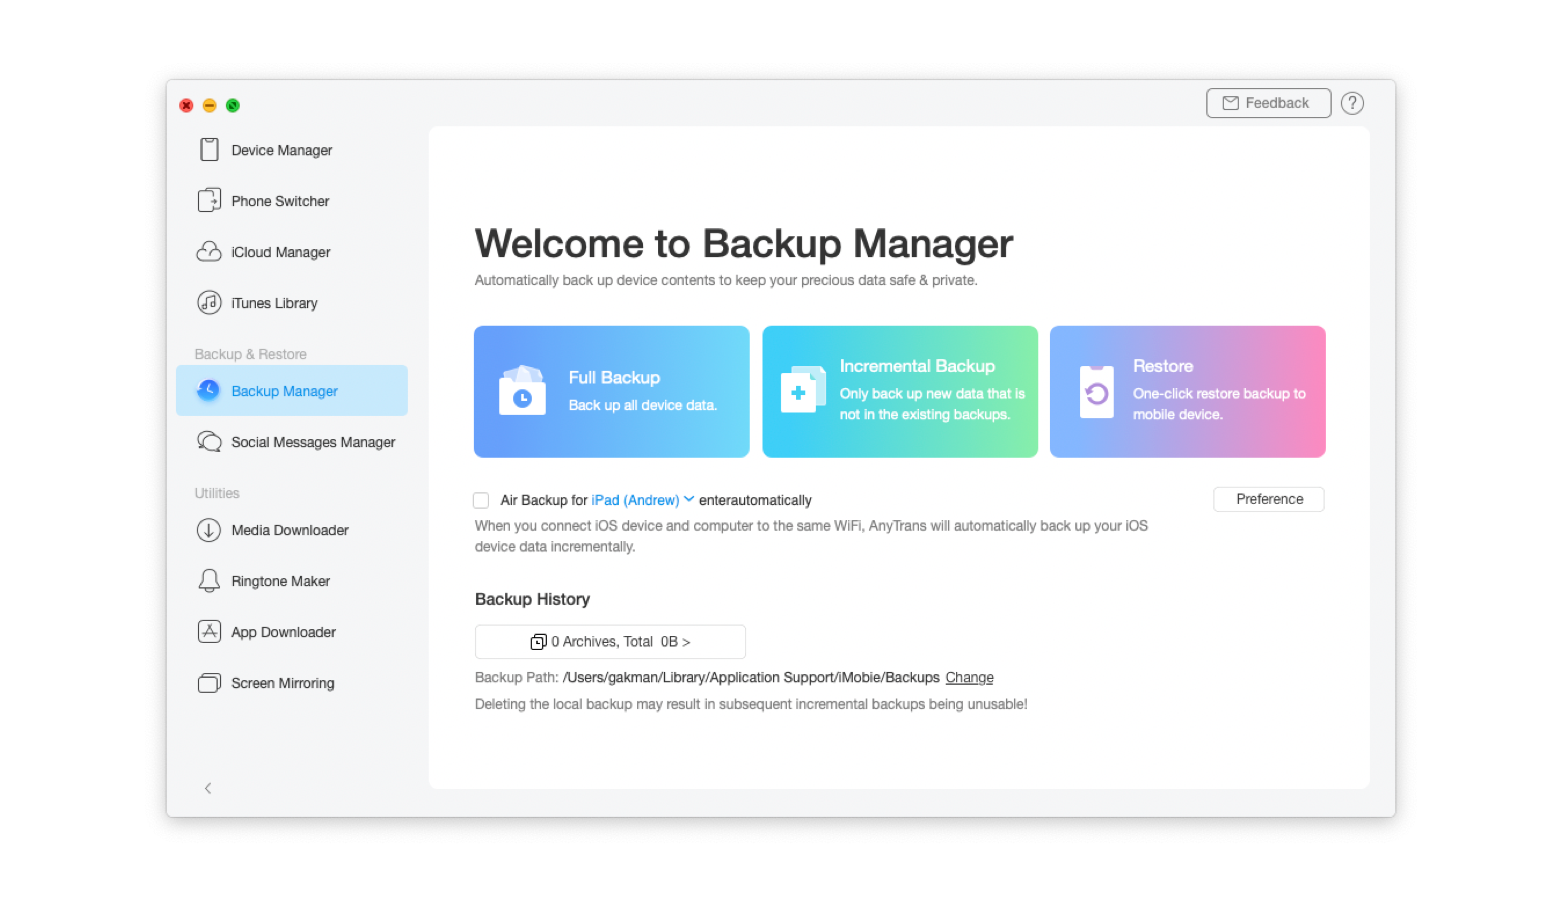 Choose what you want to backup - all data or only selected folders